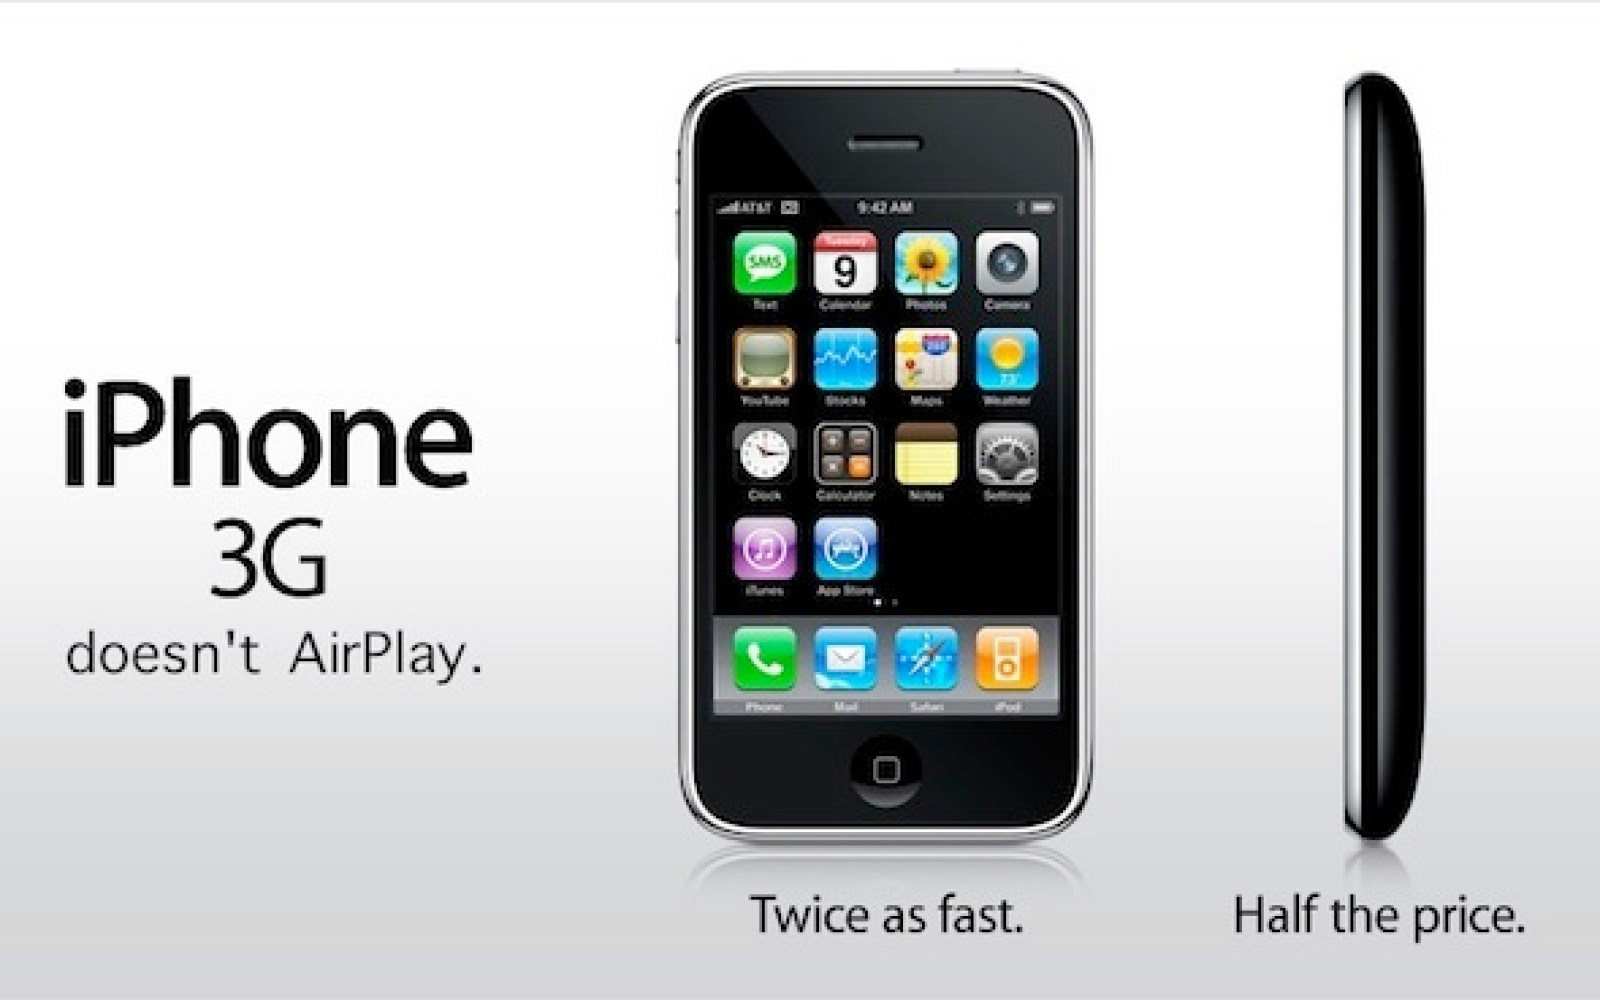 airplay iphone 5 apple kills airplay on iphone 3g 9to5mac 10050